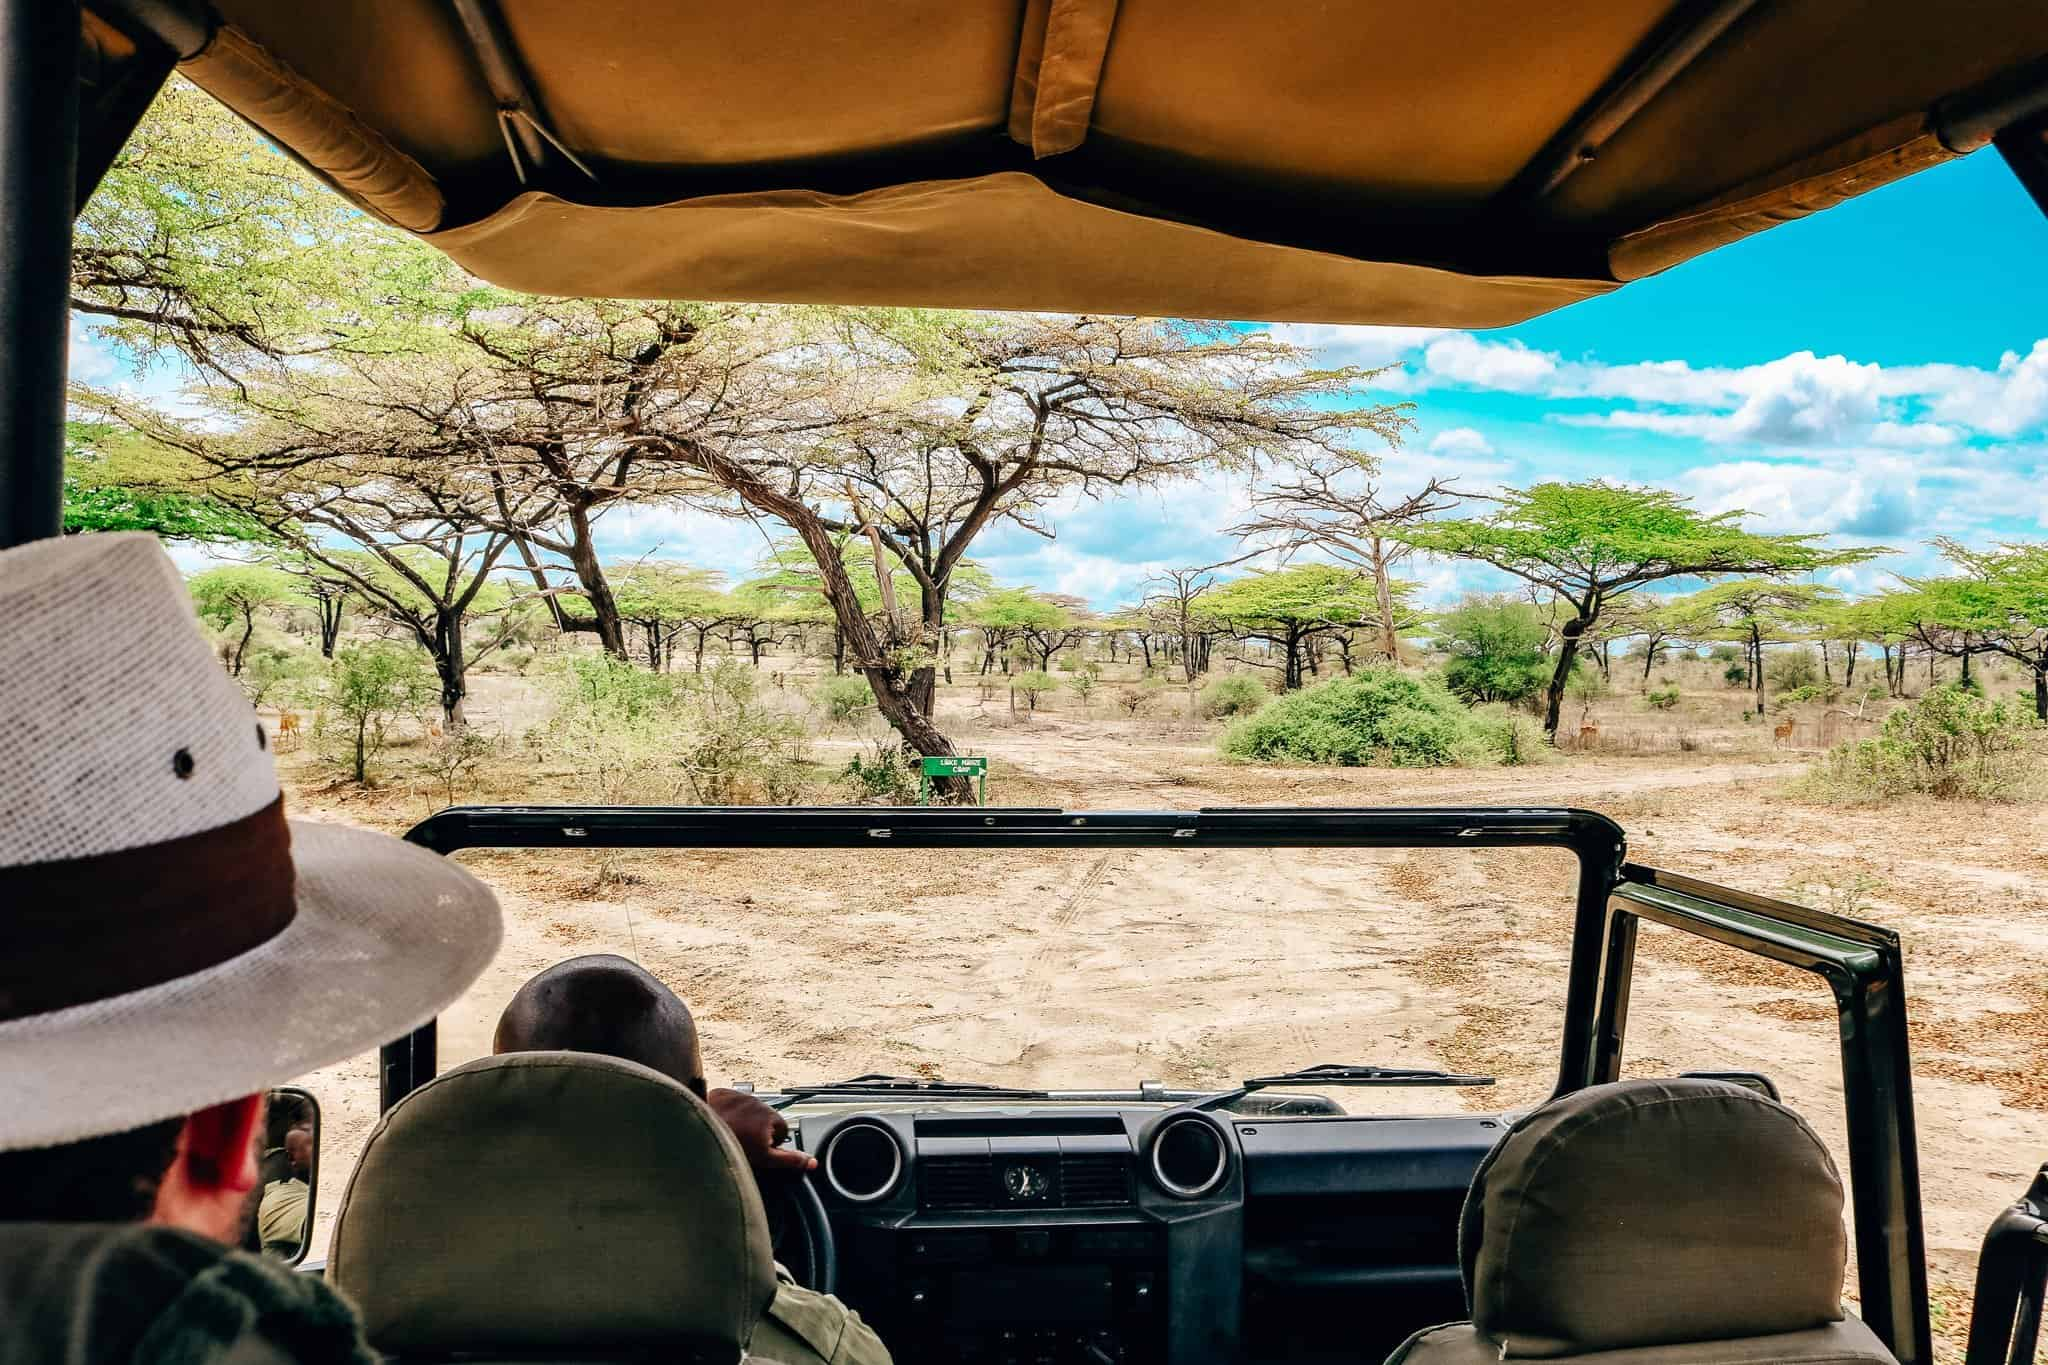 View from the Safari Car - African Safari Drive in the Selous Game Reserve